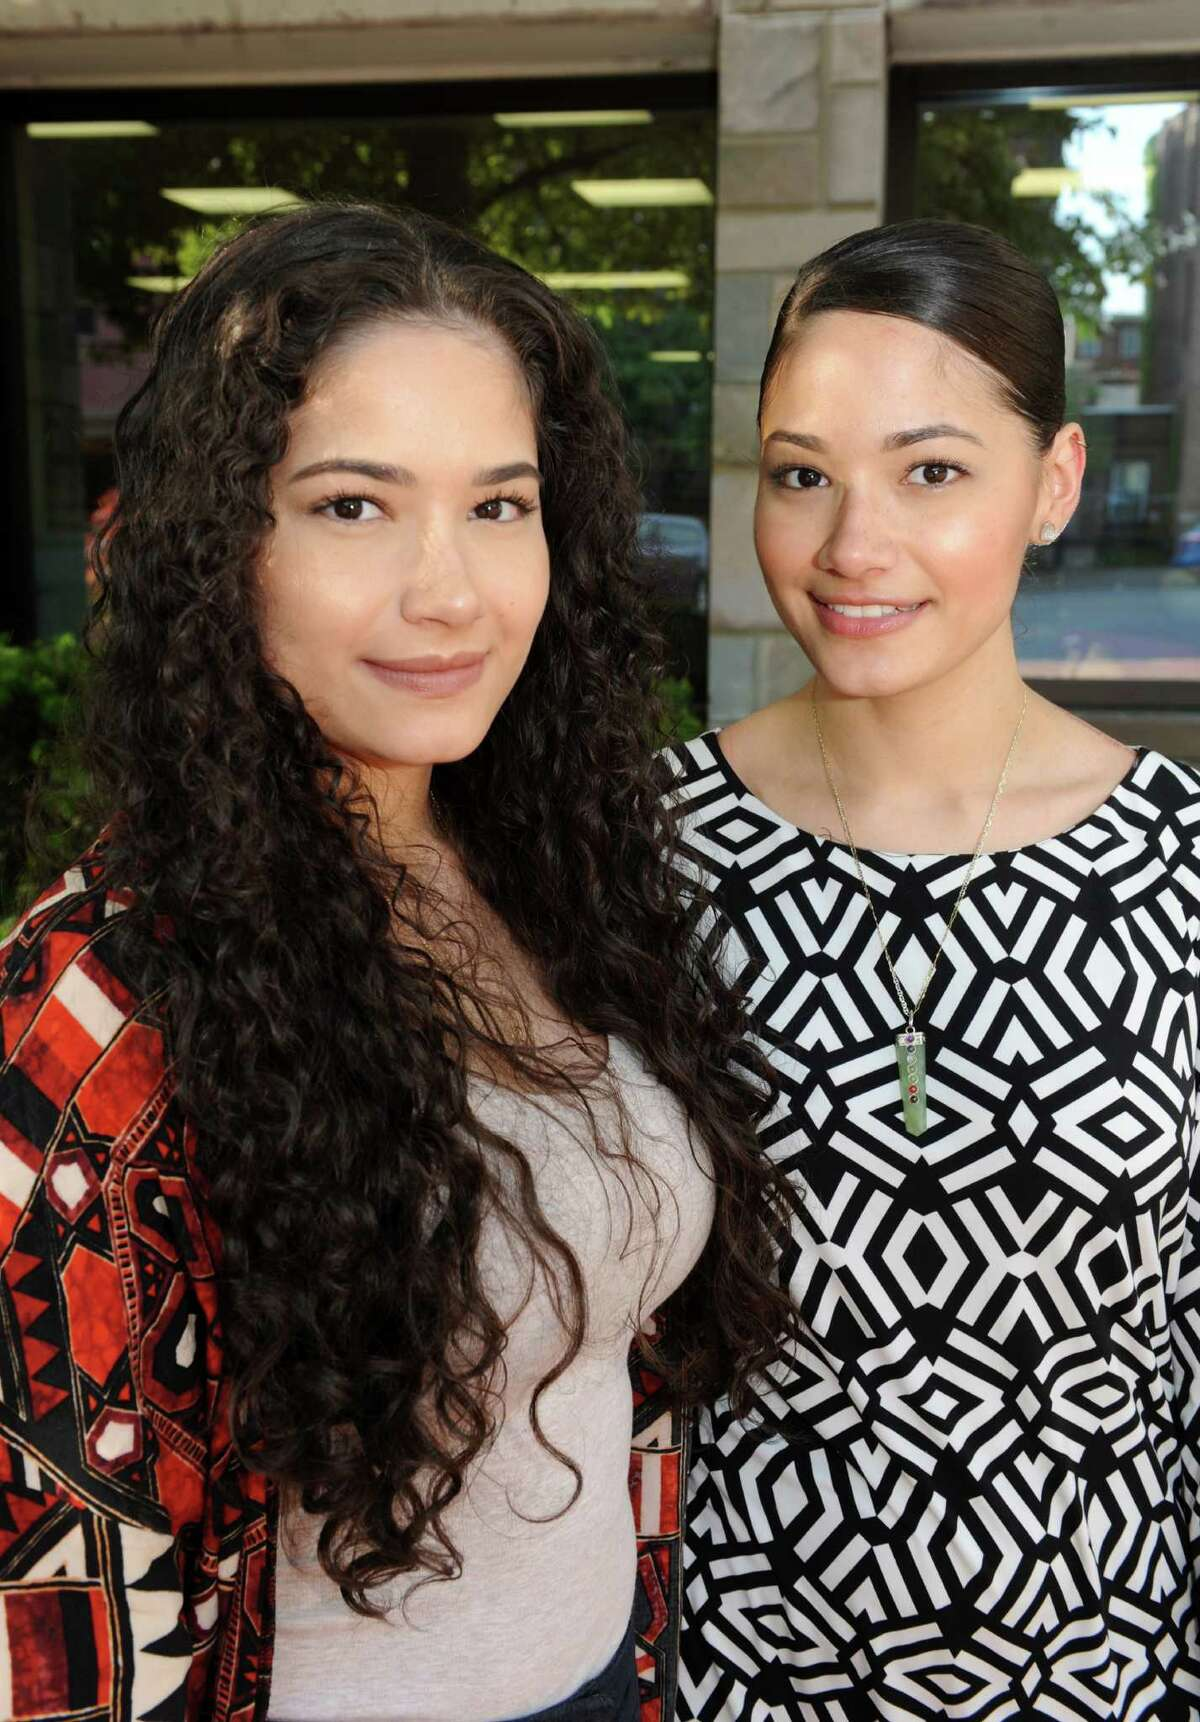 Twin sisters Marleen and Mayleen Rivera founders of I Am Strong, a nonprofit that works to empower incarcerated women, on Wednesday May 25, 2016 in Albany, N.Y. (Michael P. Farrell/Times Union)